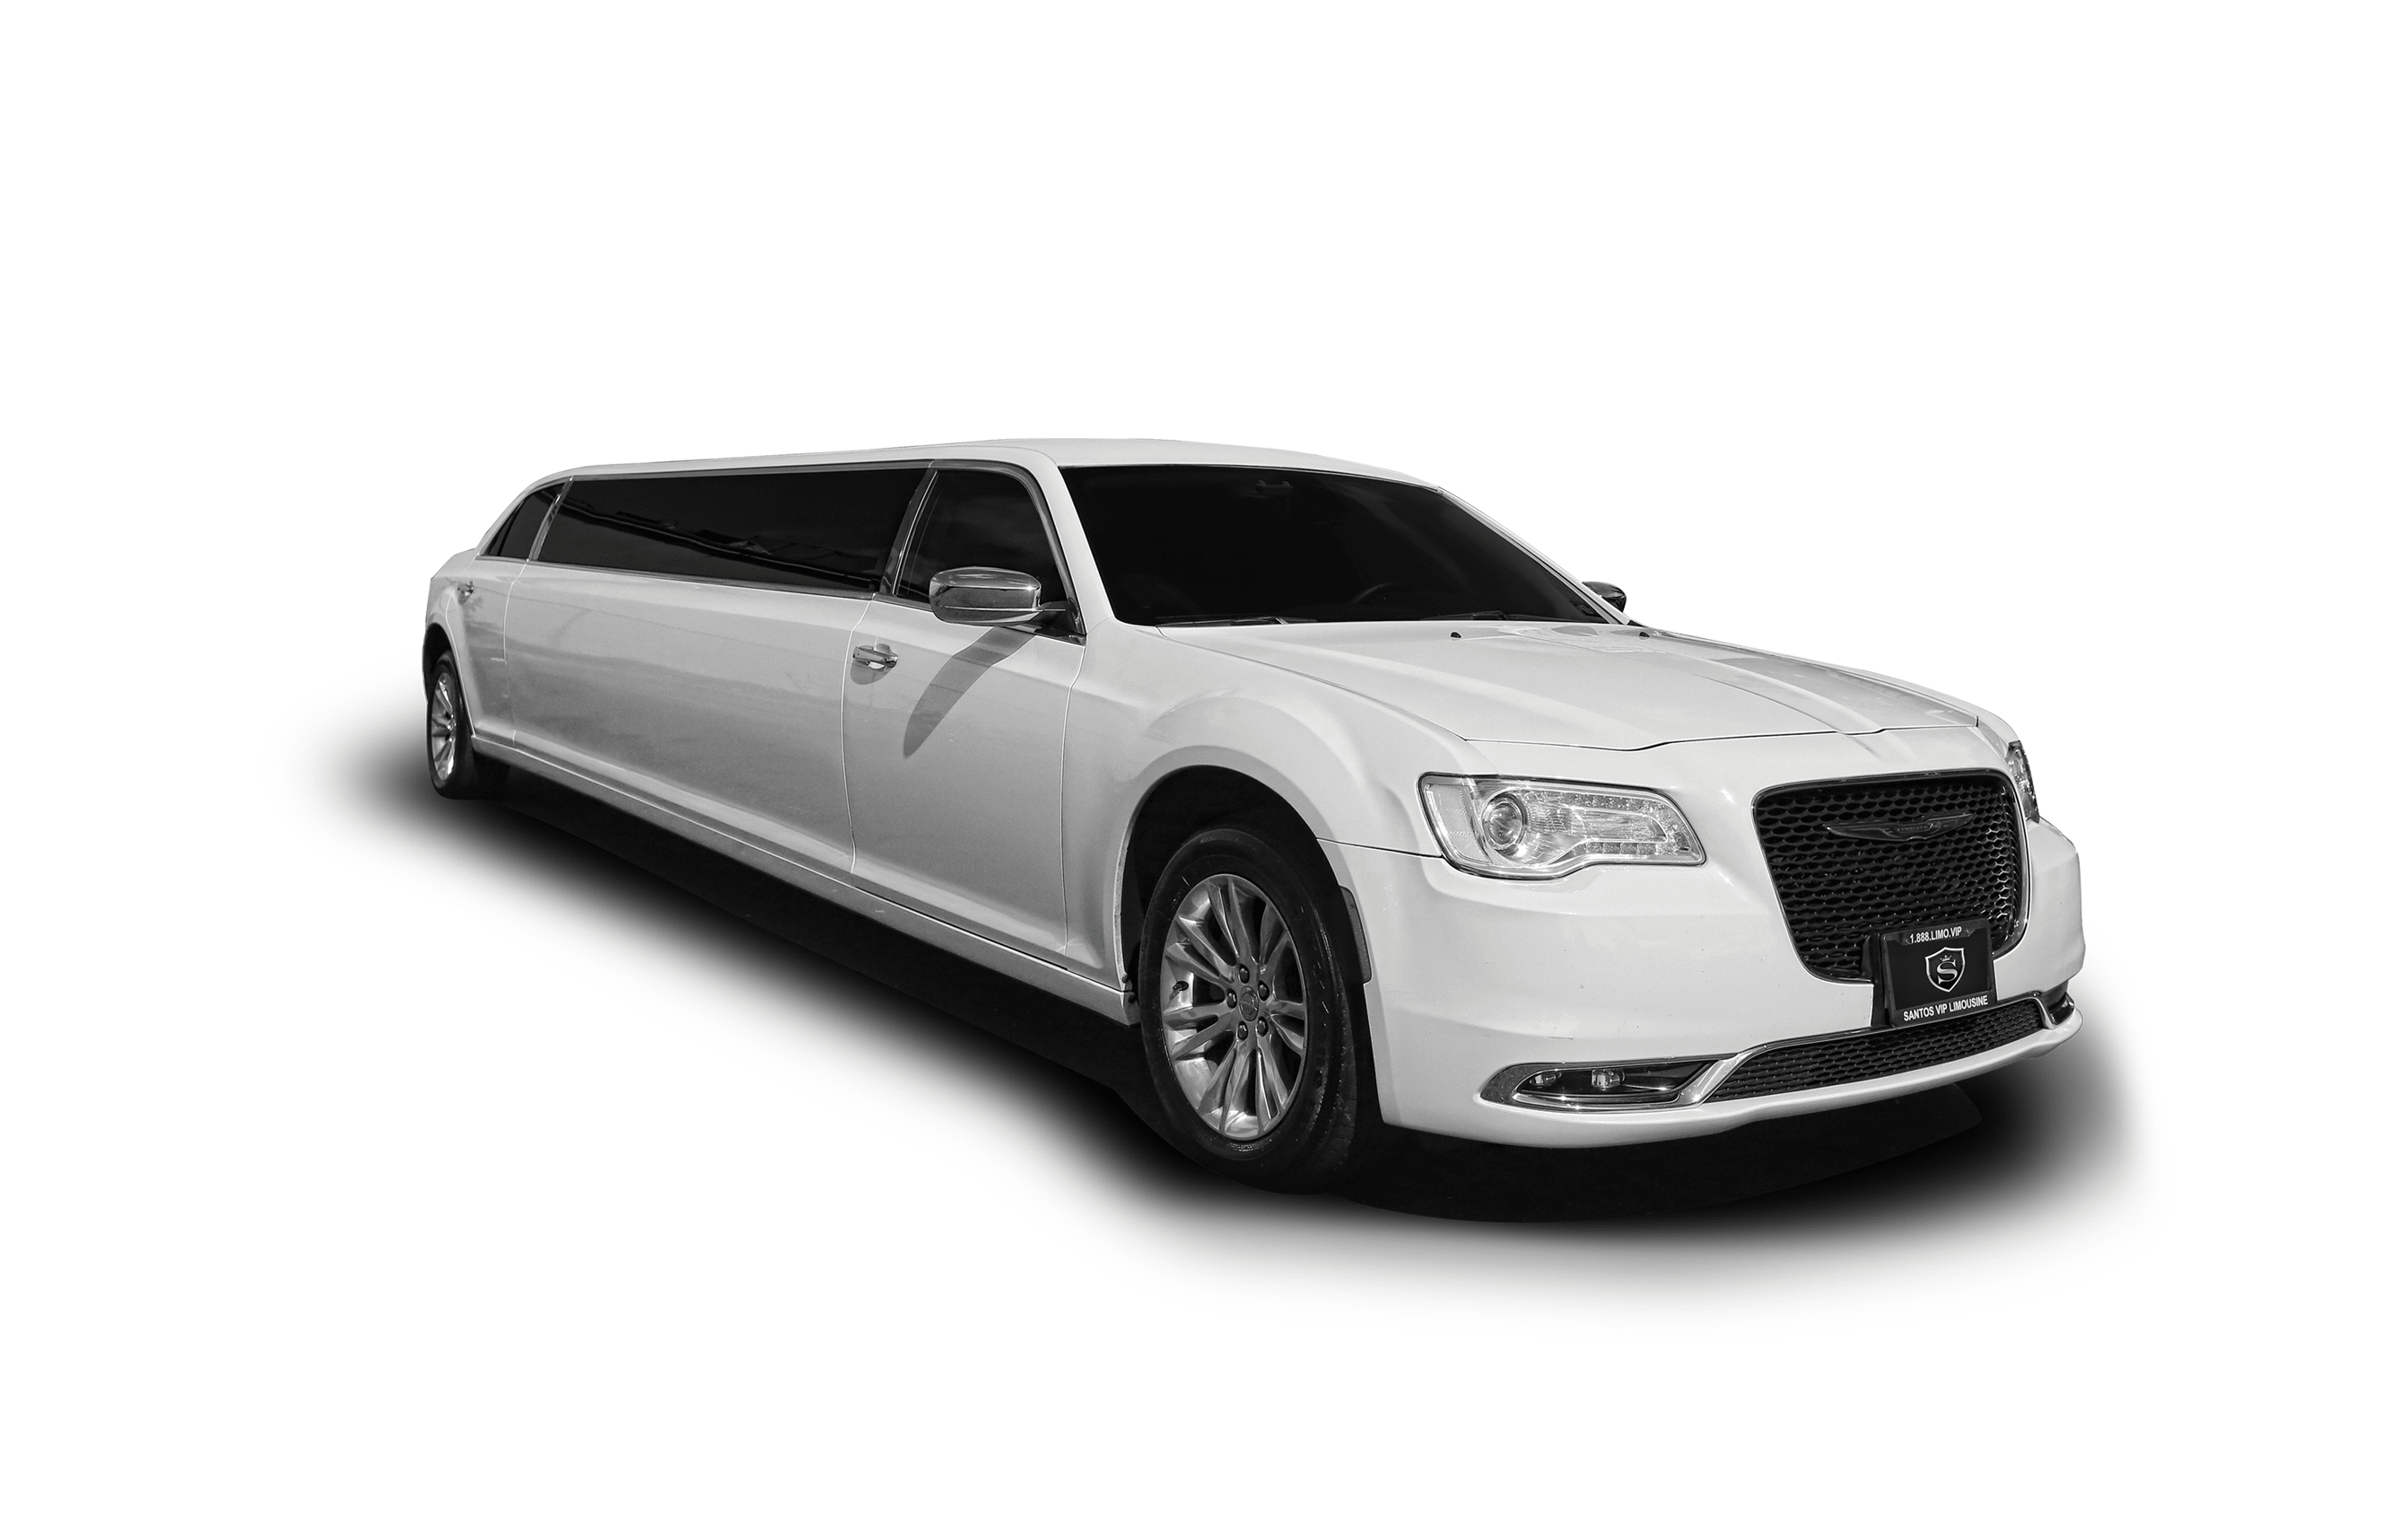 Chrysler 300 stretch limousine for theater / concert event in NJ - NY